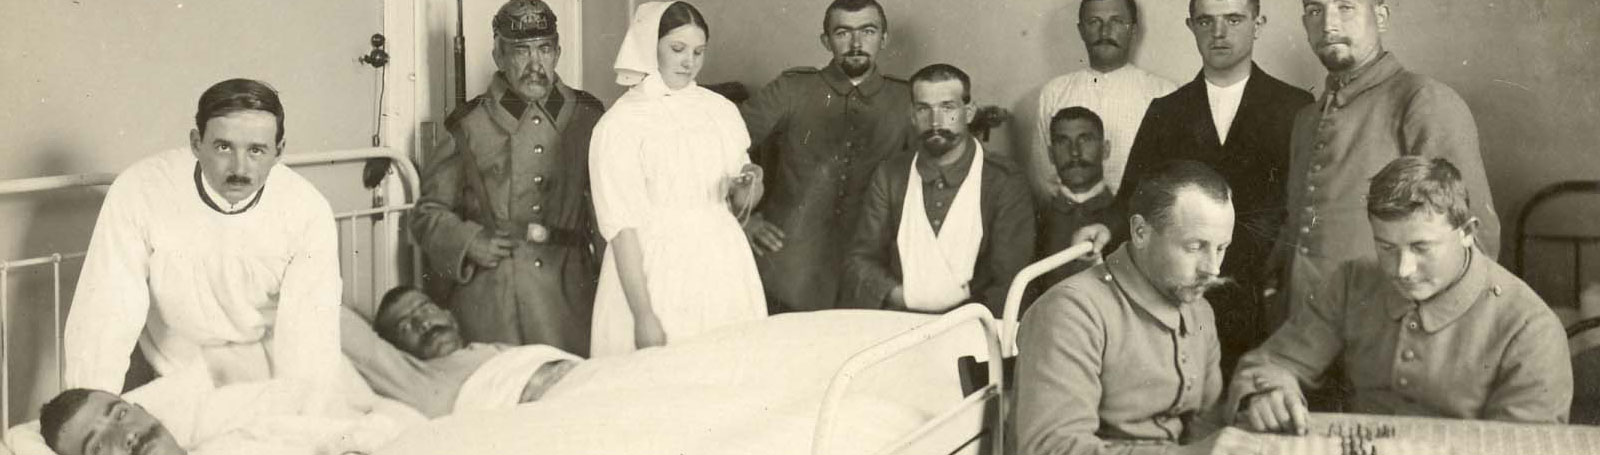 Photograph of crowded hospital ward with patients, doctors, orderlies and nurses.